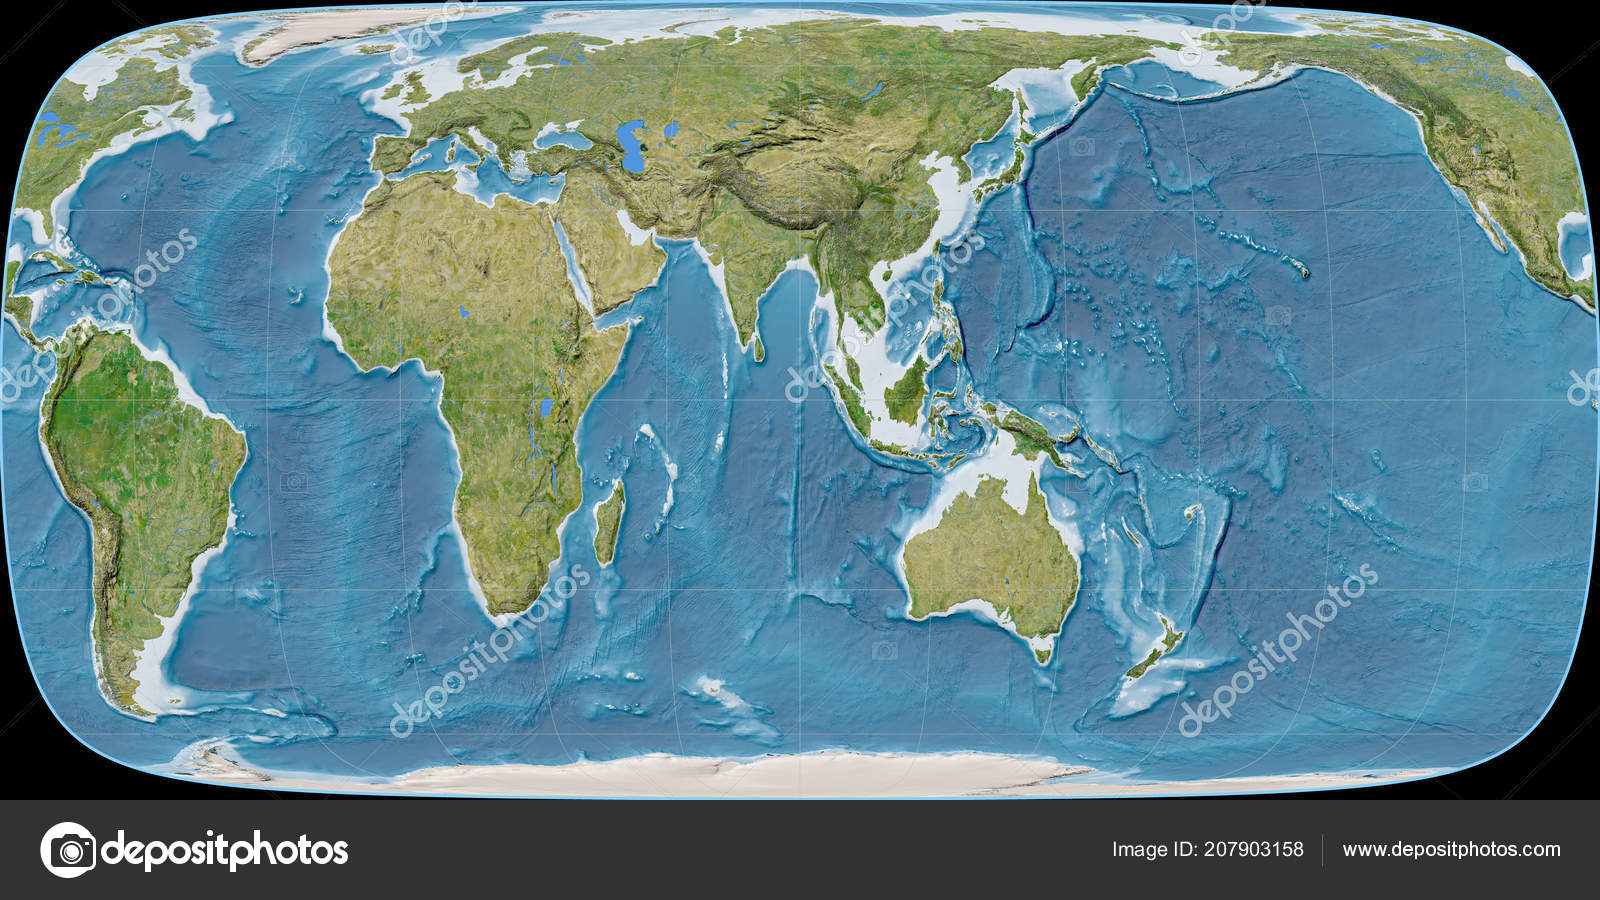 World Map Foucaut Sinusoidal Projection Centered East ... on equal-area projection map, robinson map, mollweide map, thematic map, lambert azimuthal equal-area projection, gall-peters map, miller cylindrical projection, azimuthal equidistant map, geographic map, van der grinten projection, goode homolosine projection, dymaxion map, robinson projection, behrmann projection, transverse mercator projection, gnomonic projection, polyconic map, mercator map, pseudocylindrical map, winkel tripel projection, gall–peters projection, polyconic projection, azimuthal equidistant projection, cylindrical map, orange peel projection map, mercator projection, peirce quincuncial projection, map projection, stereographic projection, mollweide projection, lambert conformal conic projection, equirectangular map, polar map, equirectangular projection, hemispherical map,